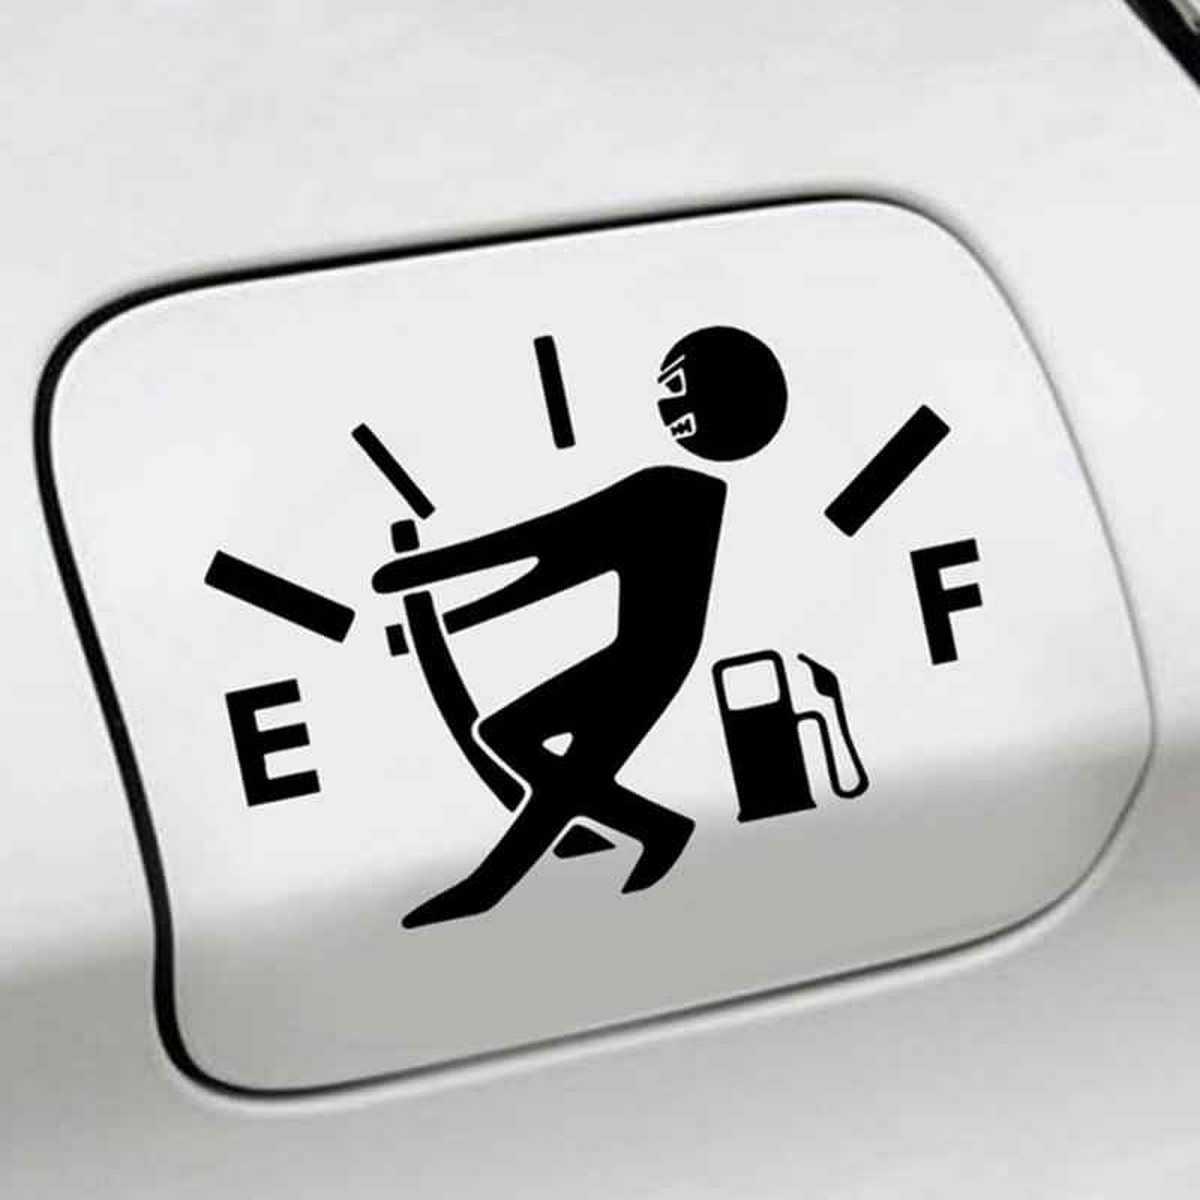 Funny Car Sticker (Black) Pull Fuel Tank Pointer To Full Fuel Gage Empty Stickers Vinyl Car Fuel Tank Decal Decoration Stickers for Car